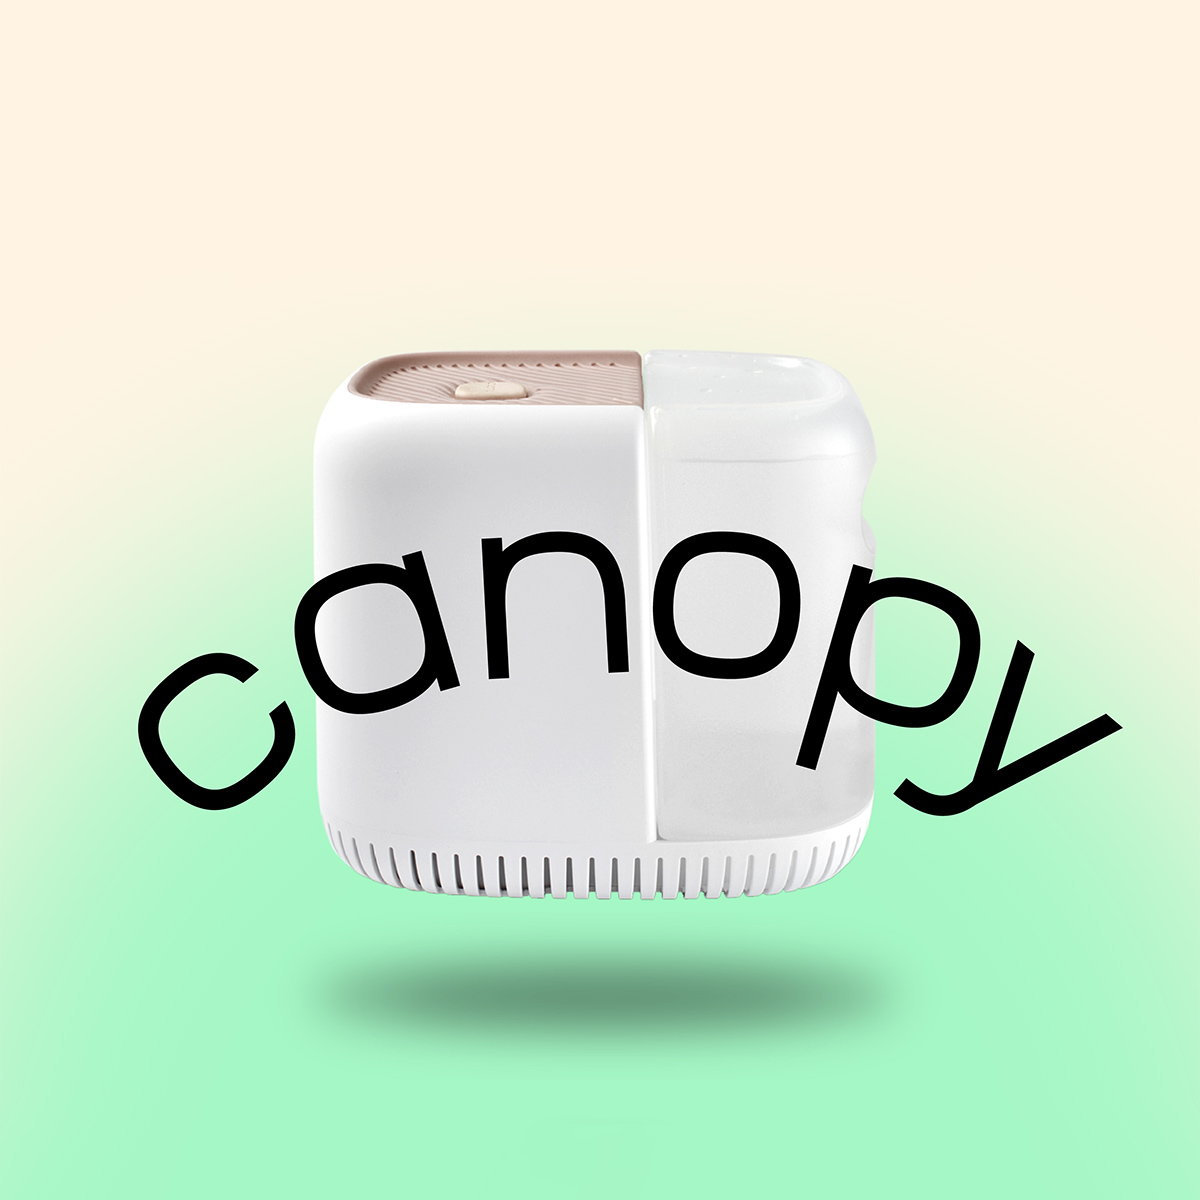 SMAKK Creates Identity for Canopy Humidifier